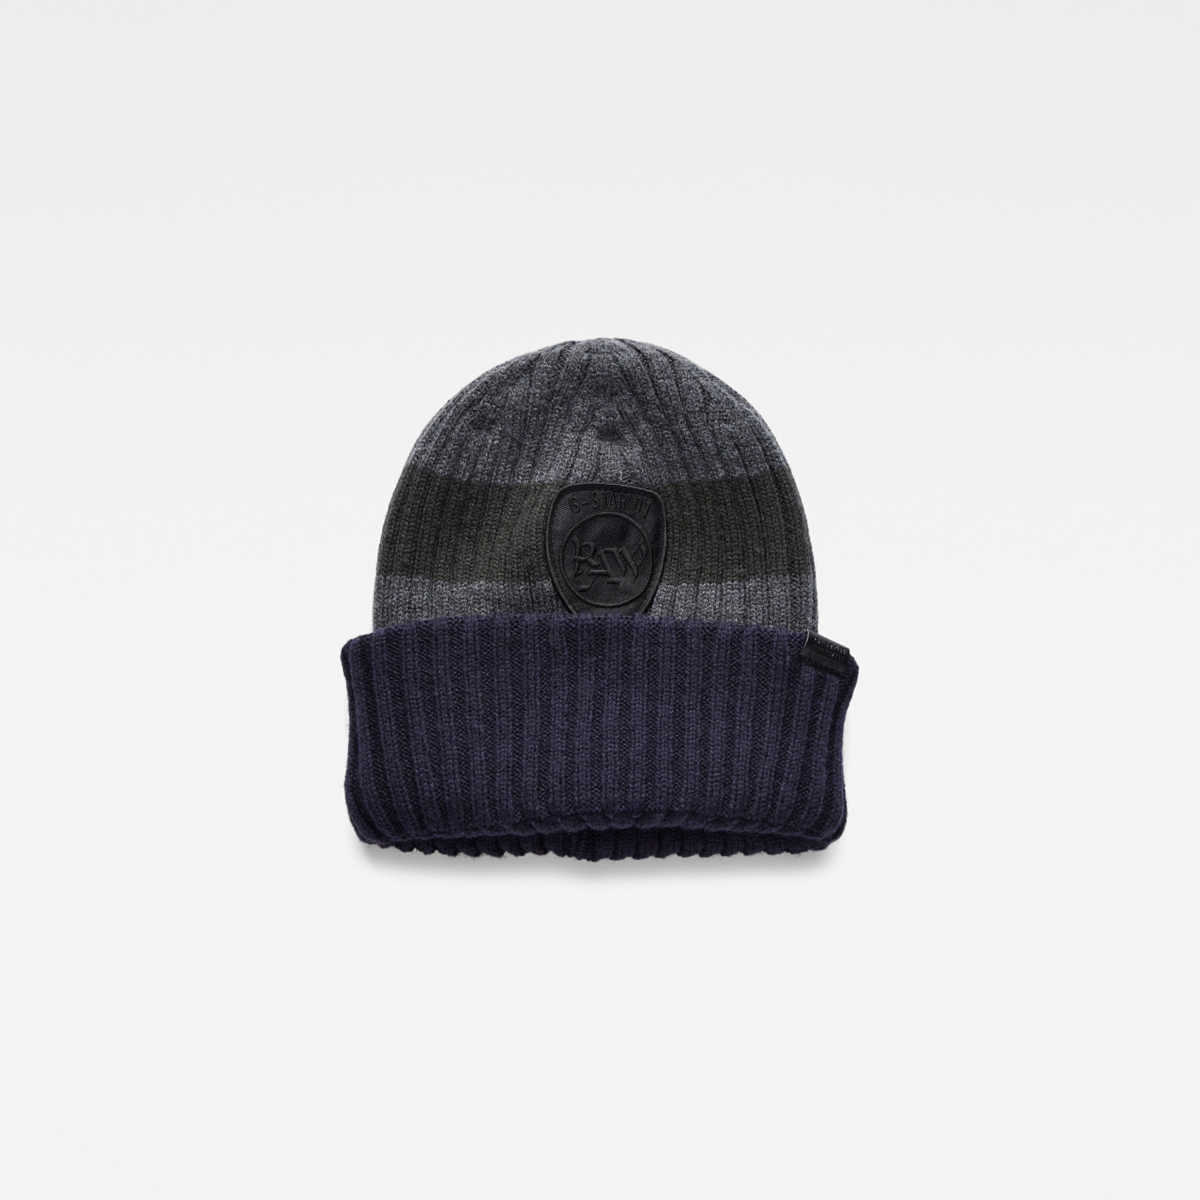 G-Star Accessories Xemy Beanie Multi Color Male Canada - GOOFASH - Mens HATS